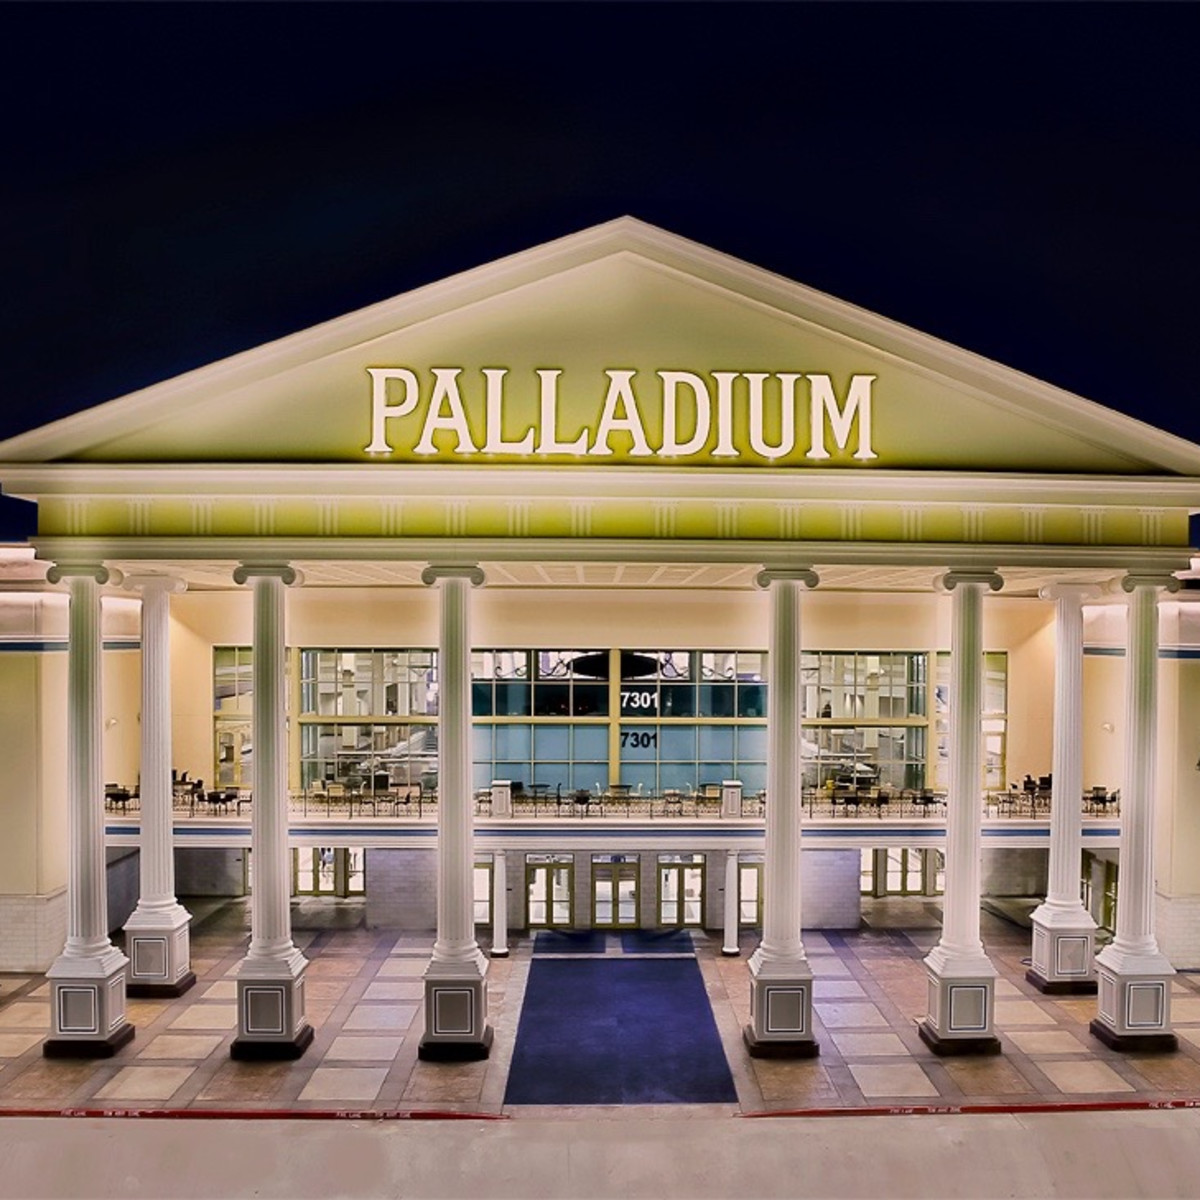 Santikos Palladium theaters in Richmond